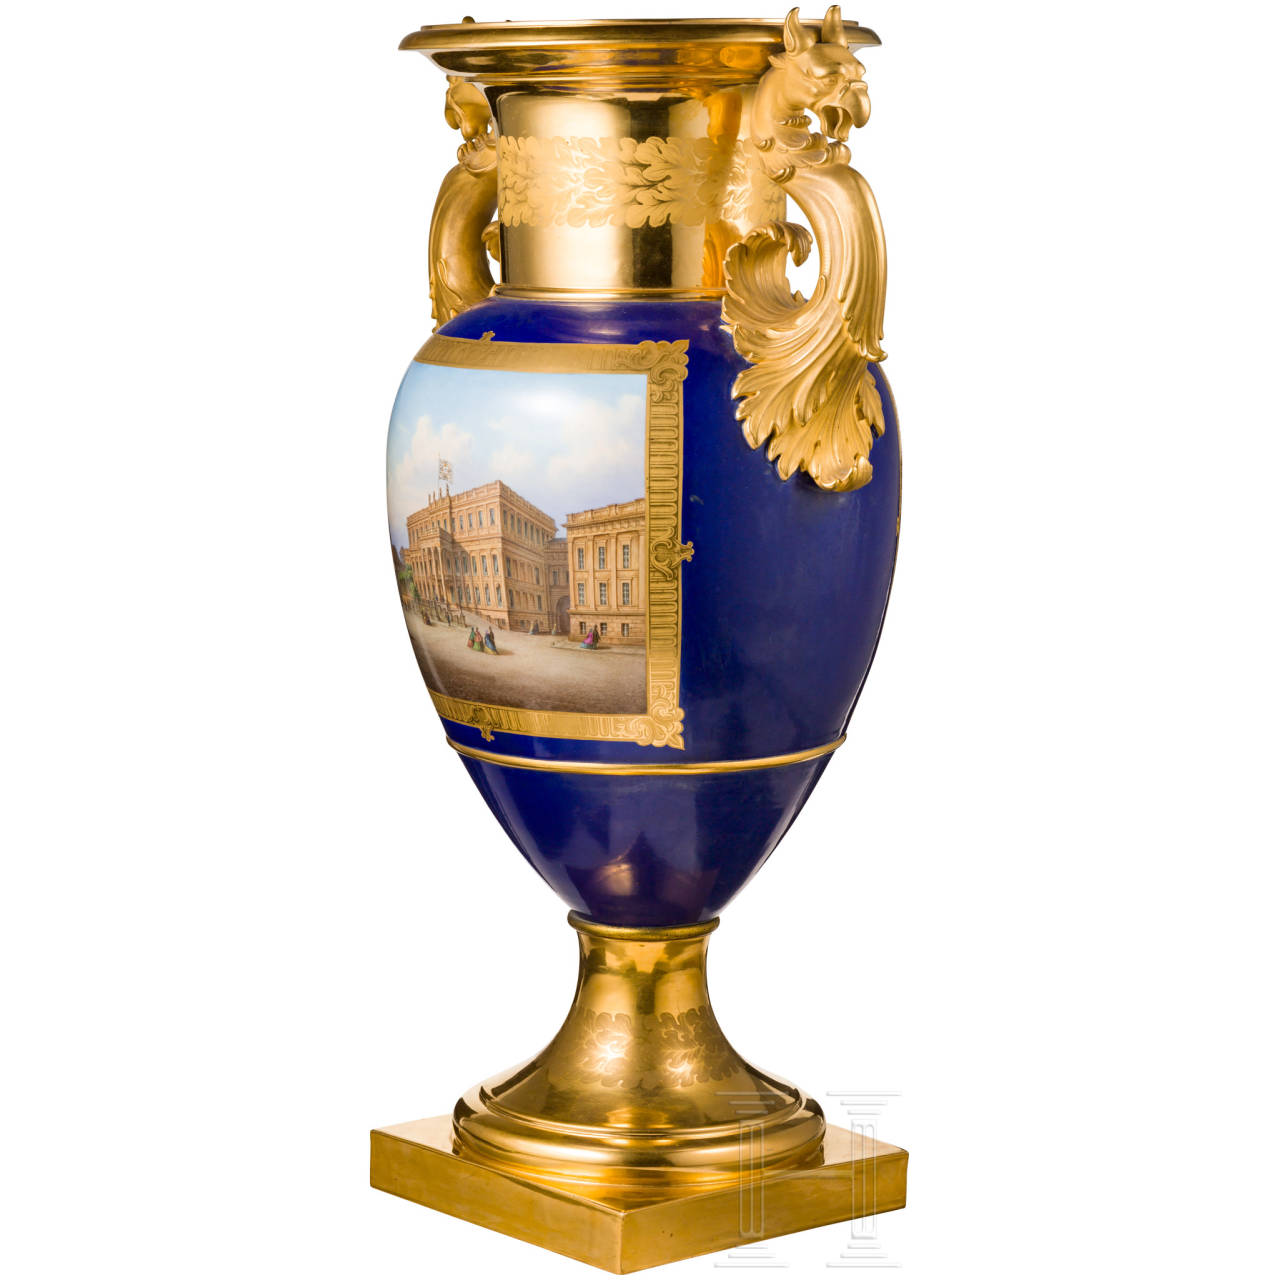 A striking deluxe handle vase, KPM, Berlin, circa 1860